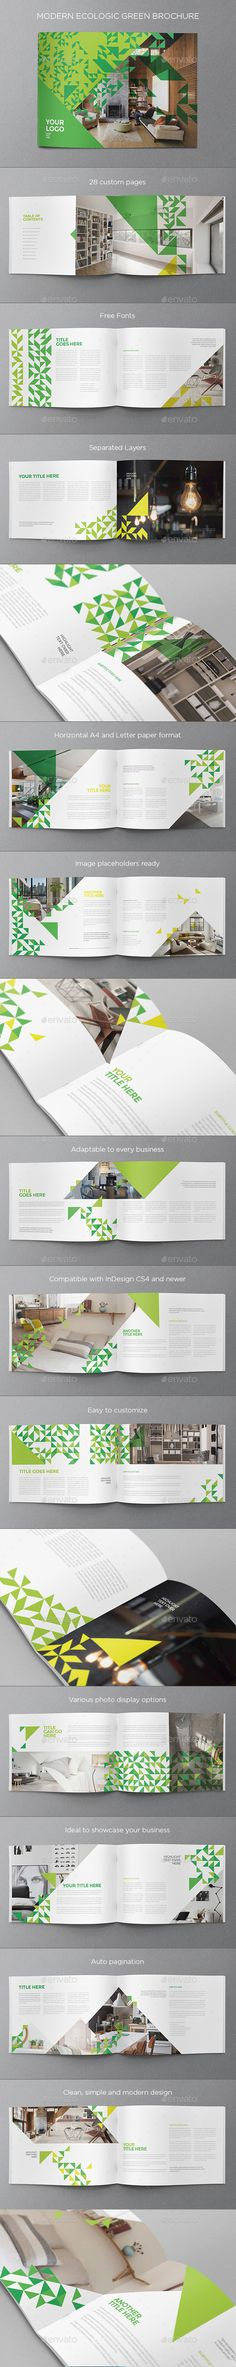 Clean, Modern and Simple Design Ecologic Green Brochure Template InDesign INDD. Id Design, Book Design, Layout Design, Company Profile Design, Ecology Design, Graphic Design Brochure, Folder Design, Catalog Design, Brochure Template